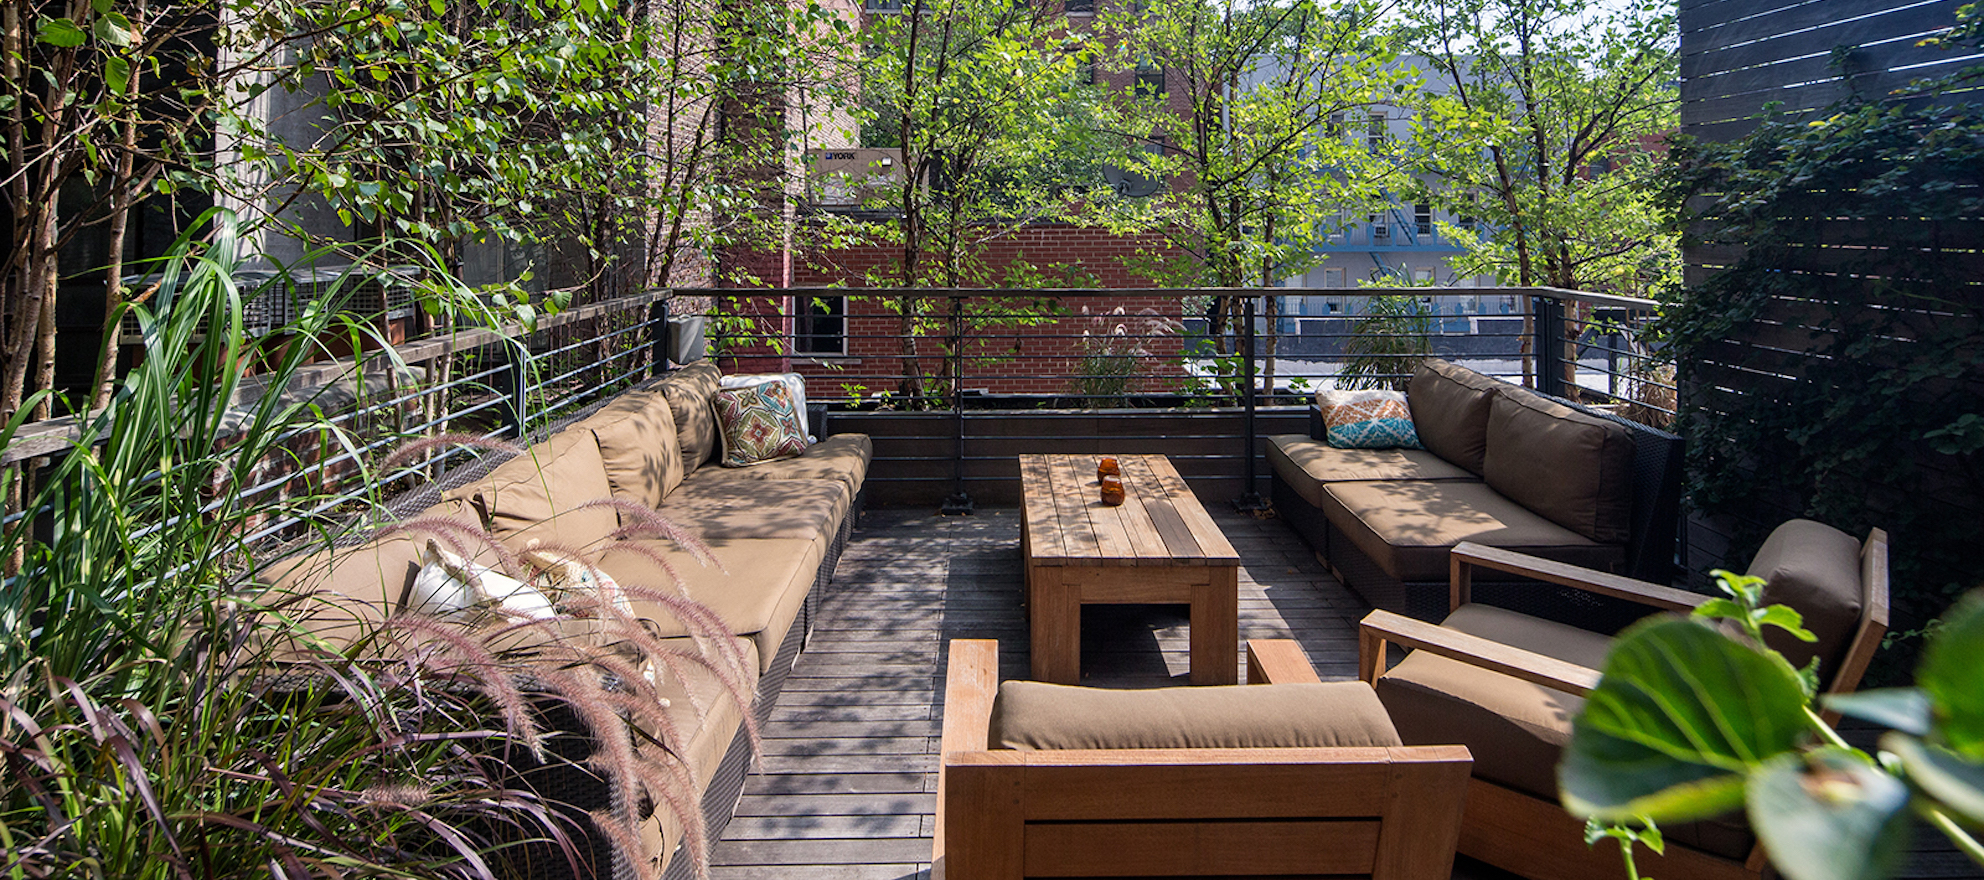 Luxury listing of the day: 3-bedroom townhouse in West Village, NYC